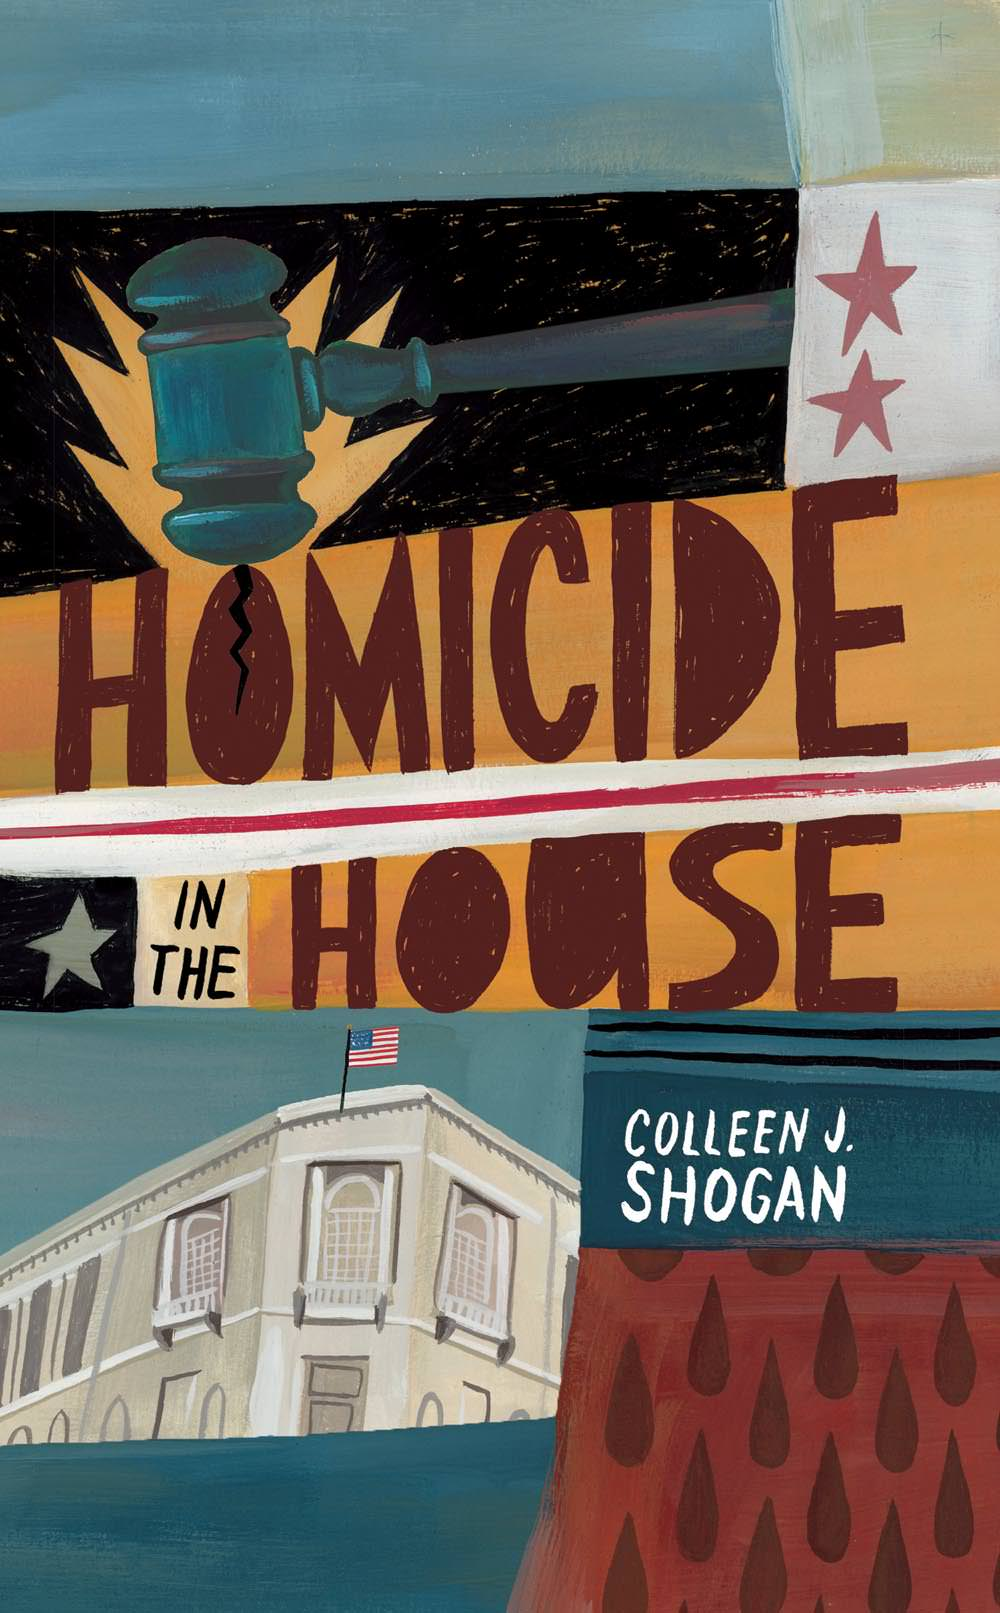 Homicide in the House - MH854